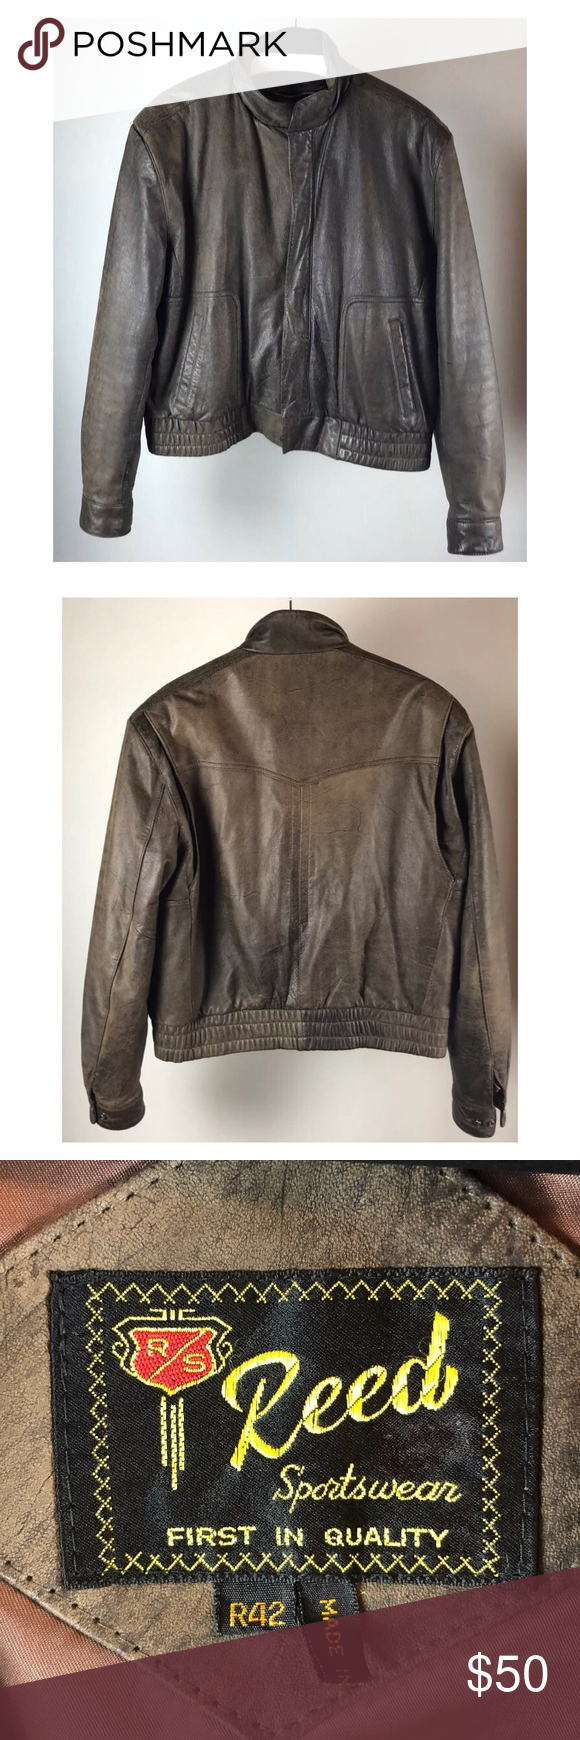 Vintage Reed Sportswear Mens Brown Leather Jacket A Really Cool Jacket With A Great Classic Look Reed Spo Brown Leather Jacket Men Jackets Men Fashion Jackets [ 1740 x 580 Pixel ]